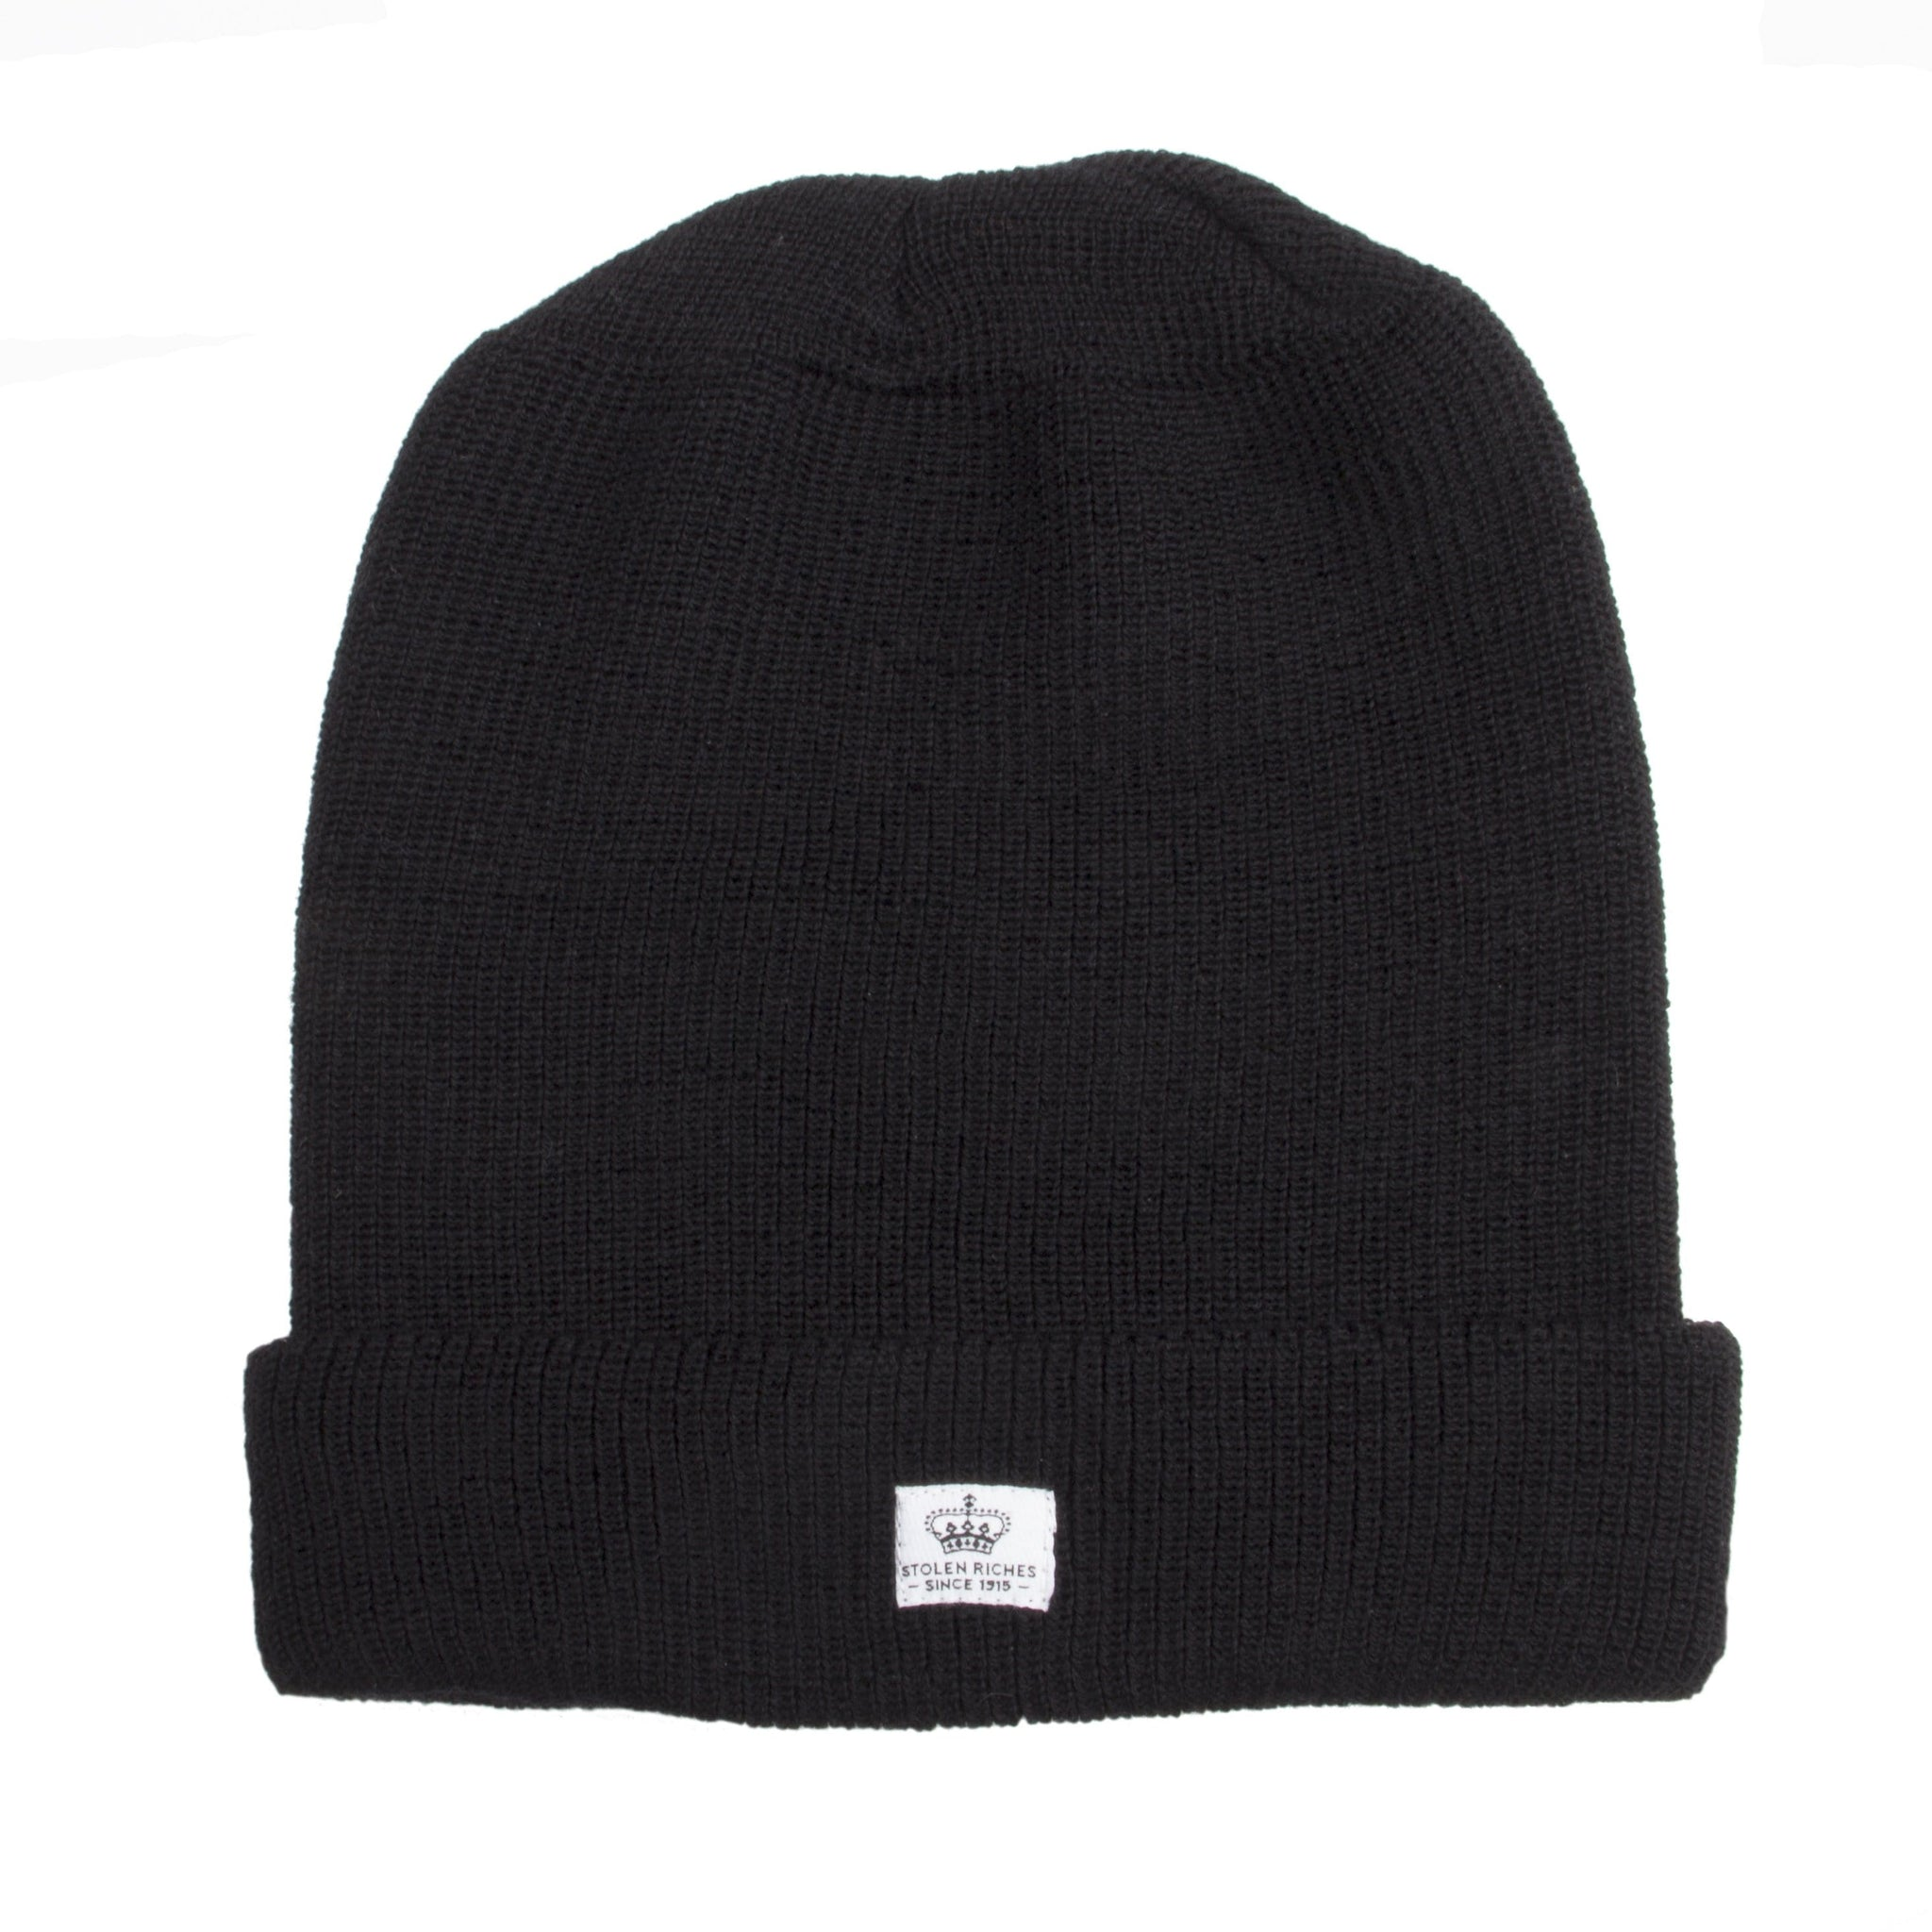 Folsom Black Wool Toque - Stolen Riches